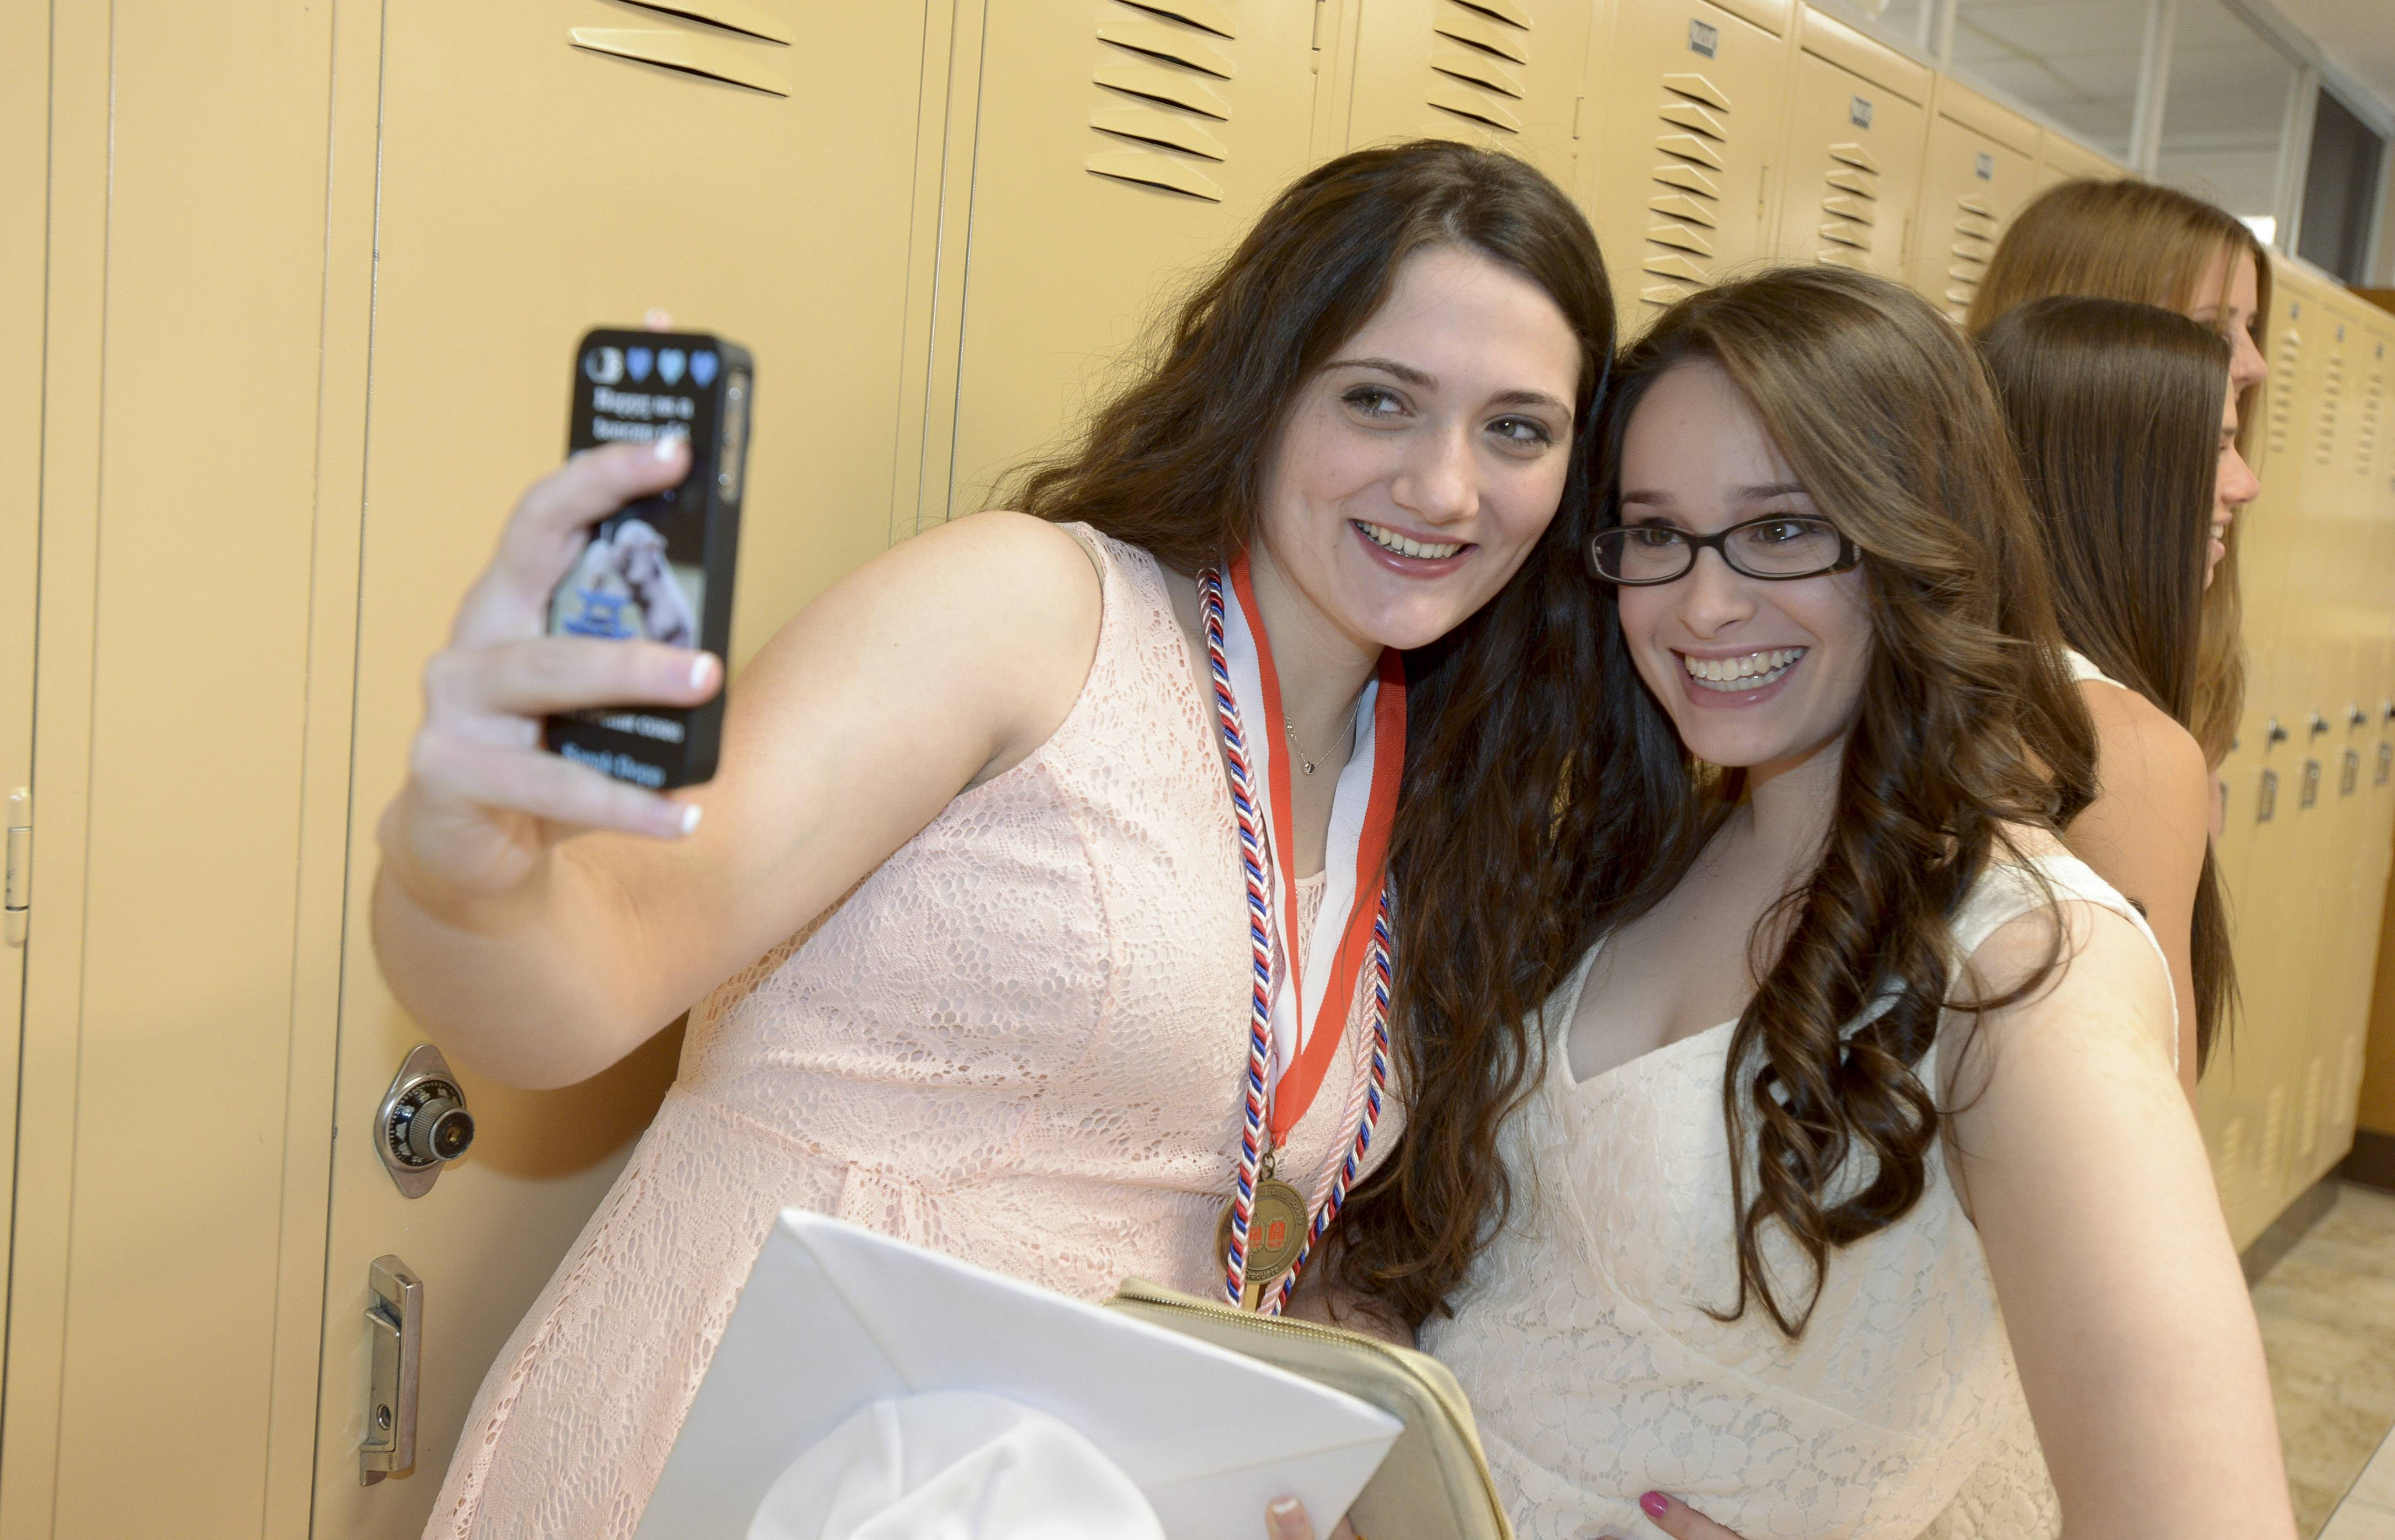 Sarah Dopp and Sabrina Bates take a selfie before Montini Catholic High School's graduation on Sunday, May 18 at Montini in Lombard.